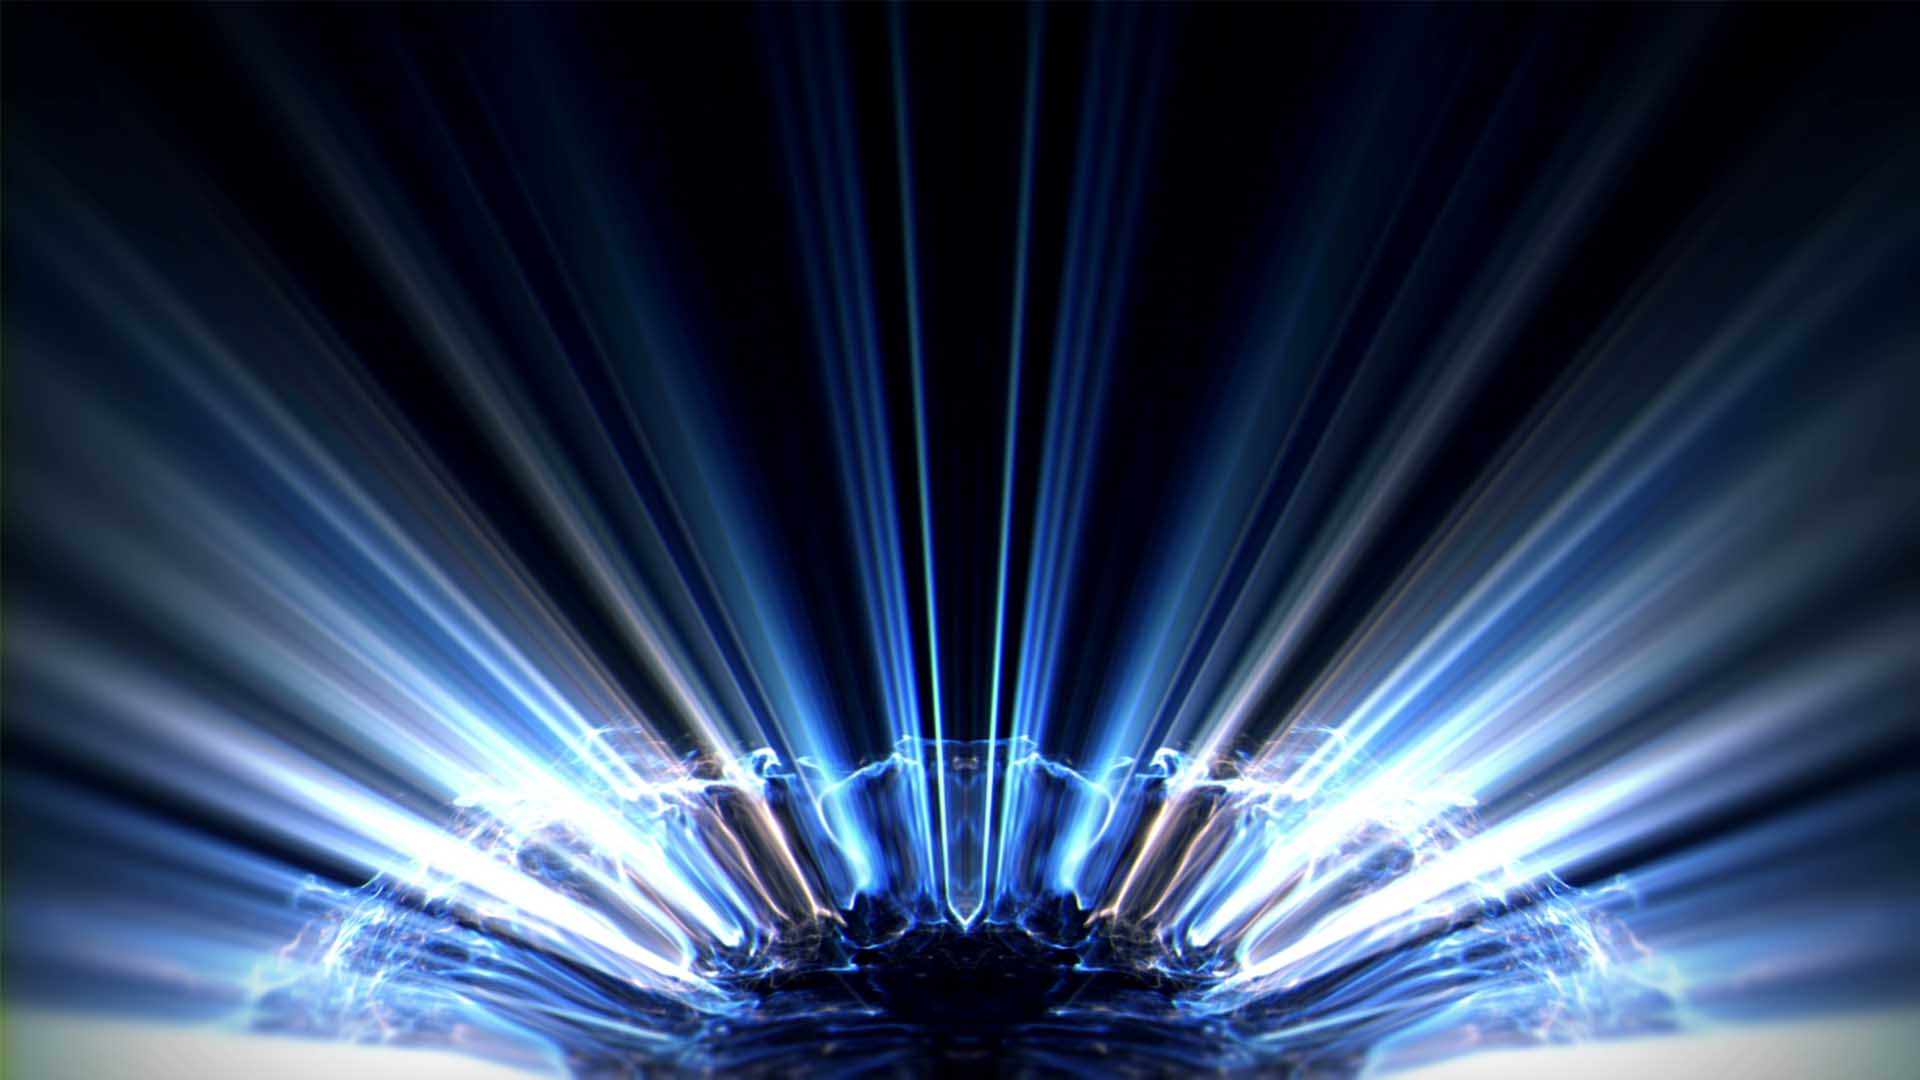 Space_Worship_Motion_Background_Galaxy_Energy_Wallpaper_Video_VJ_Loop_HD